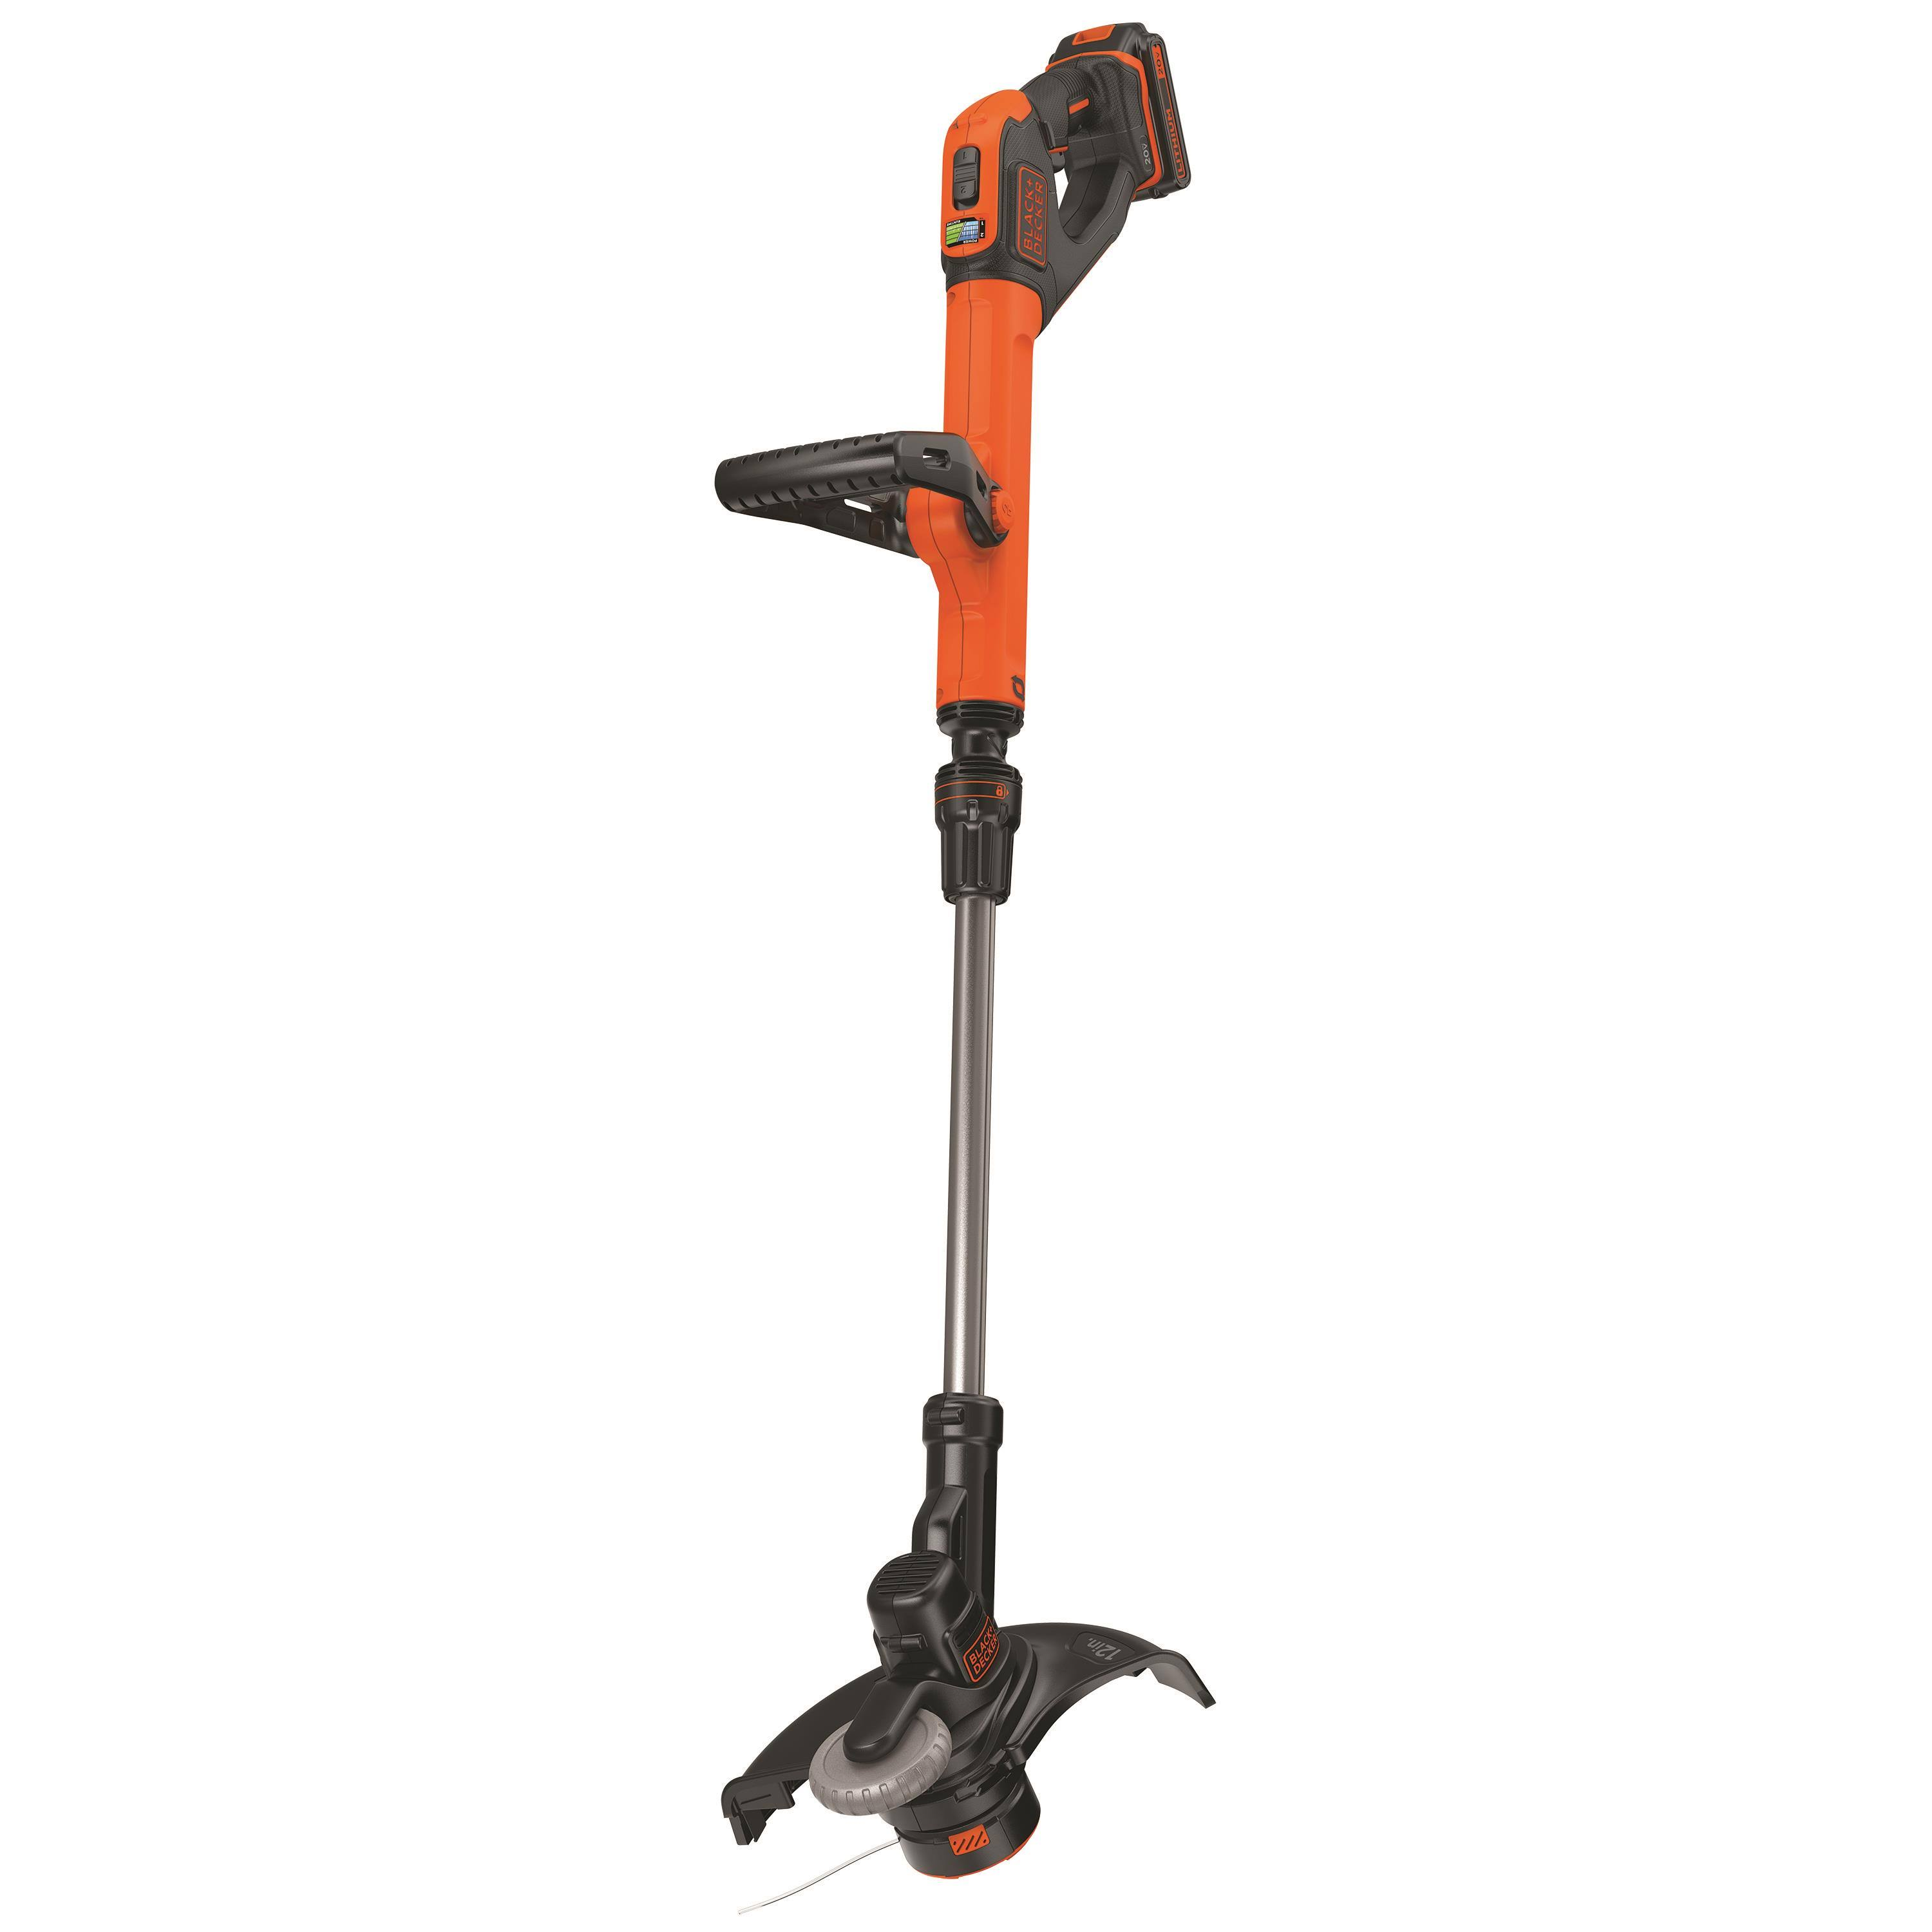 Black & Decker 2 In 1 String Grass Trimmer - 20V, 12""